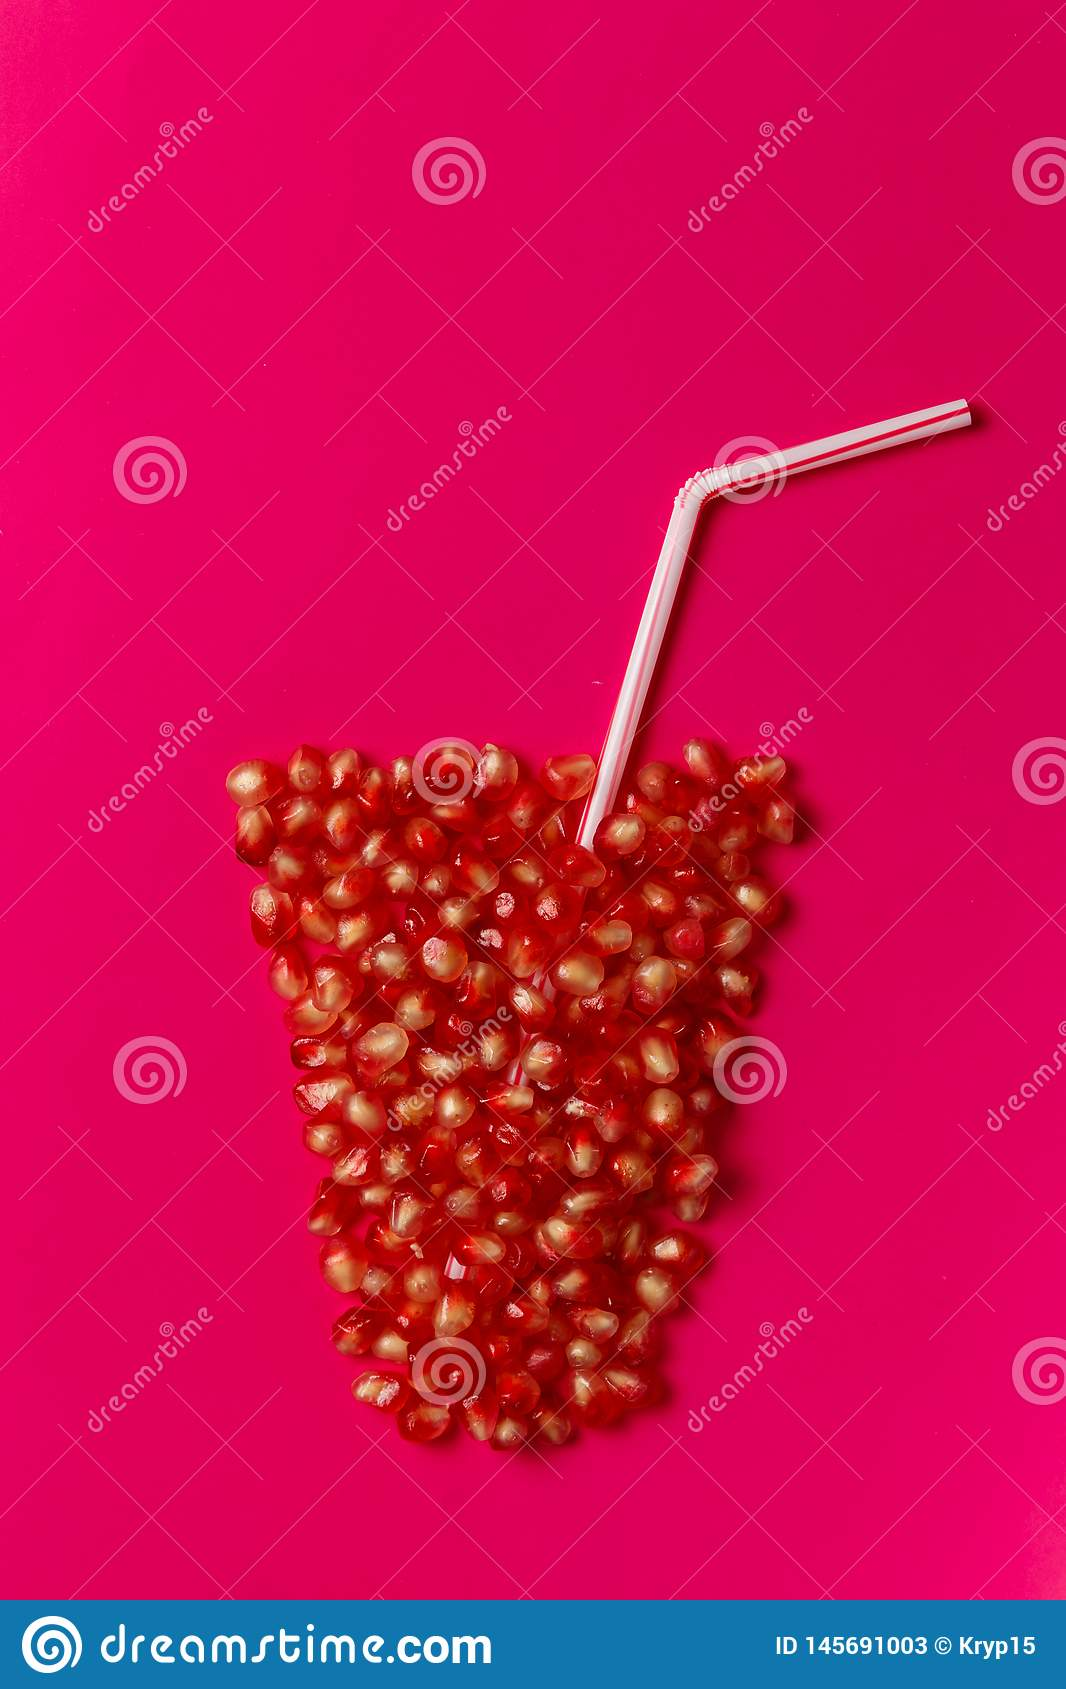 Glass of juice made of pomegranate seeds